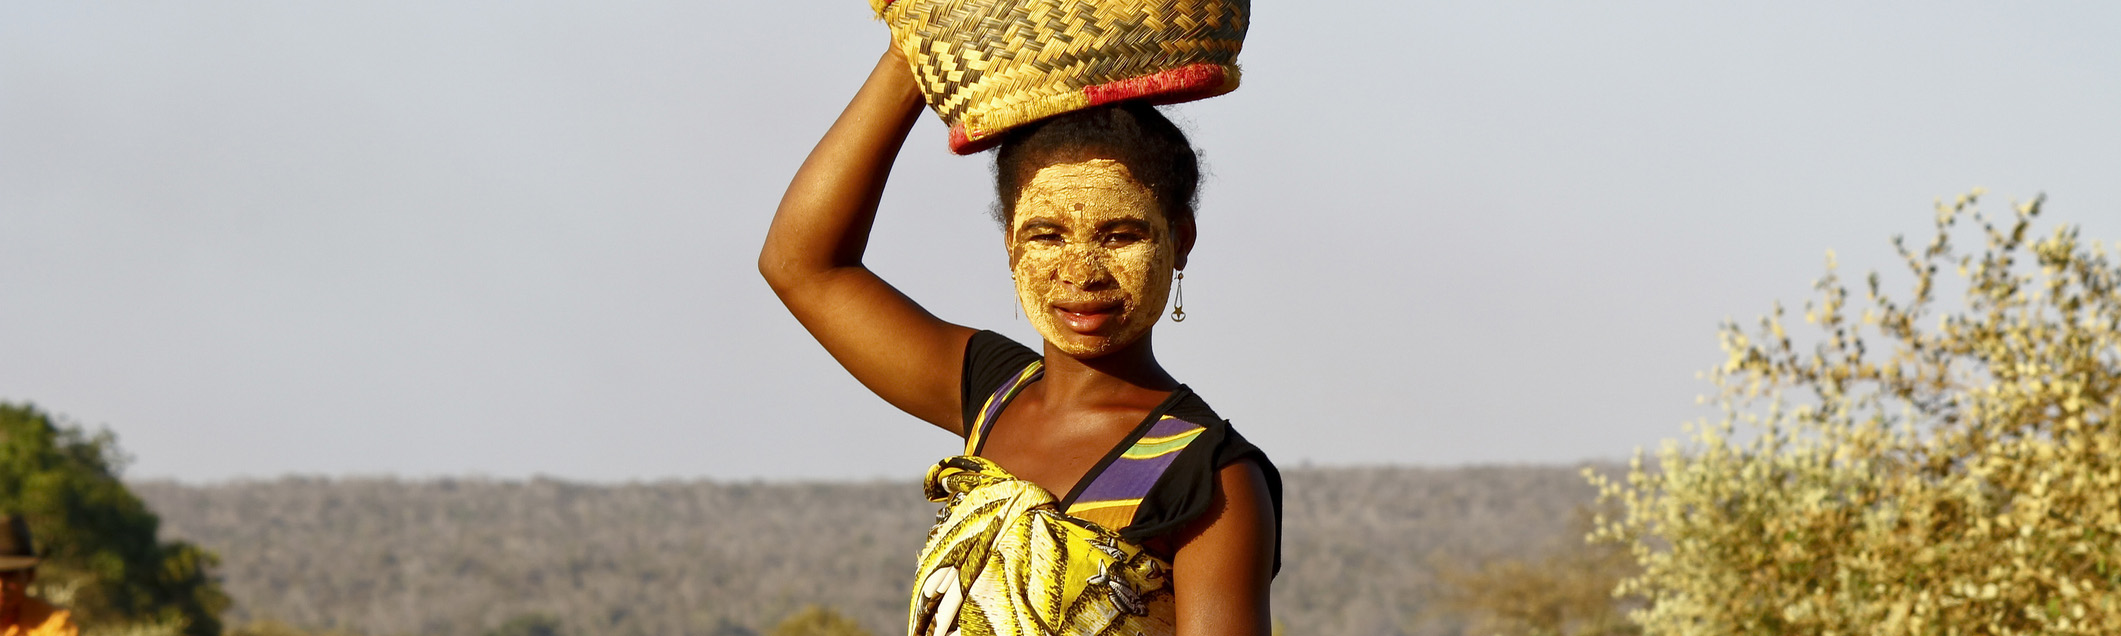 Malagasy woman with traditional mask on the face, Madagascar